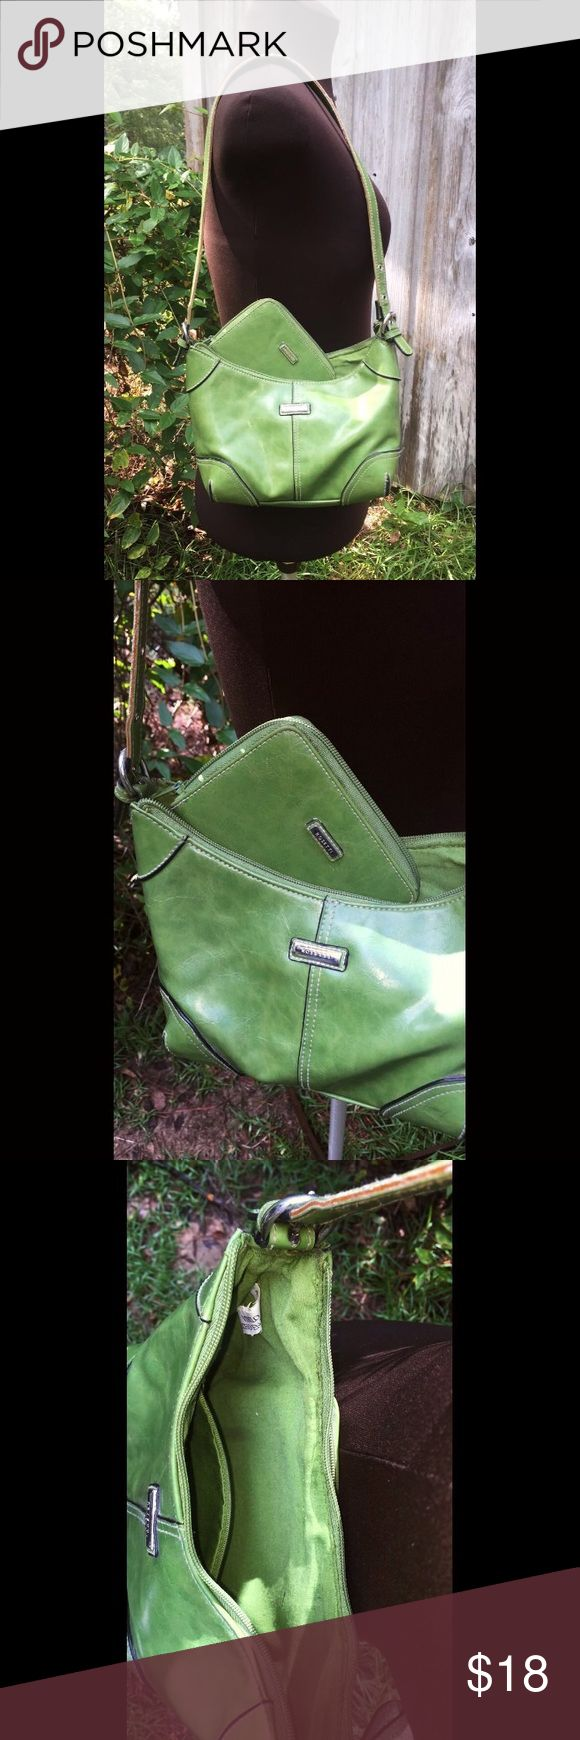 """Green Rosetti bag Vinyl. Small sized bag with matching wallet! Lightly used. Super cute. Adjustable handle. ** Full length of strap (from tip to tip) 30"""" ** Please see listing titled """"Packaging & Measurements"""" for more details!!! Feel free to make me an offer. Rosetti Bags Shoulder Bags"""